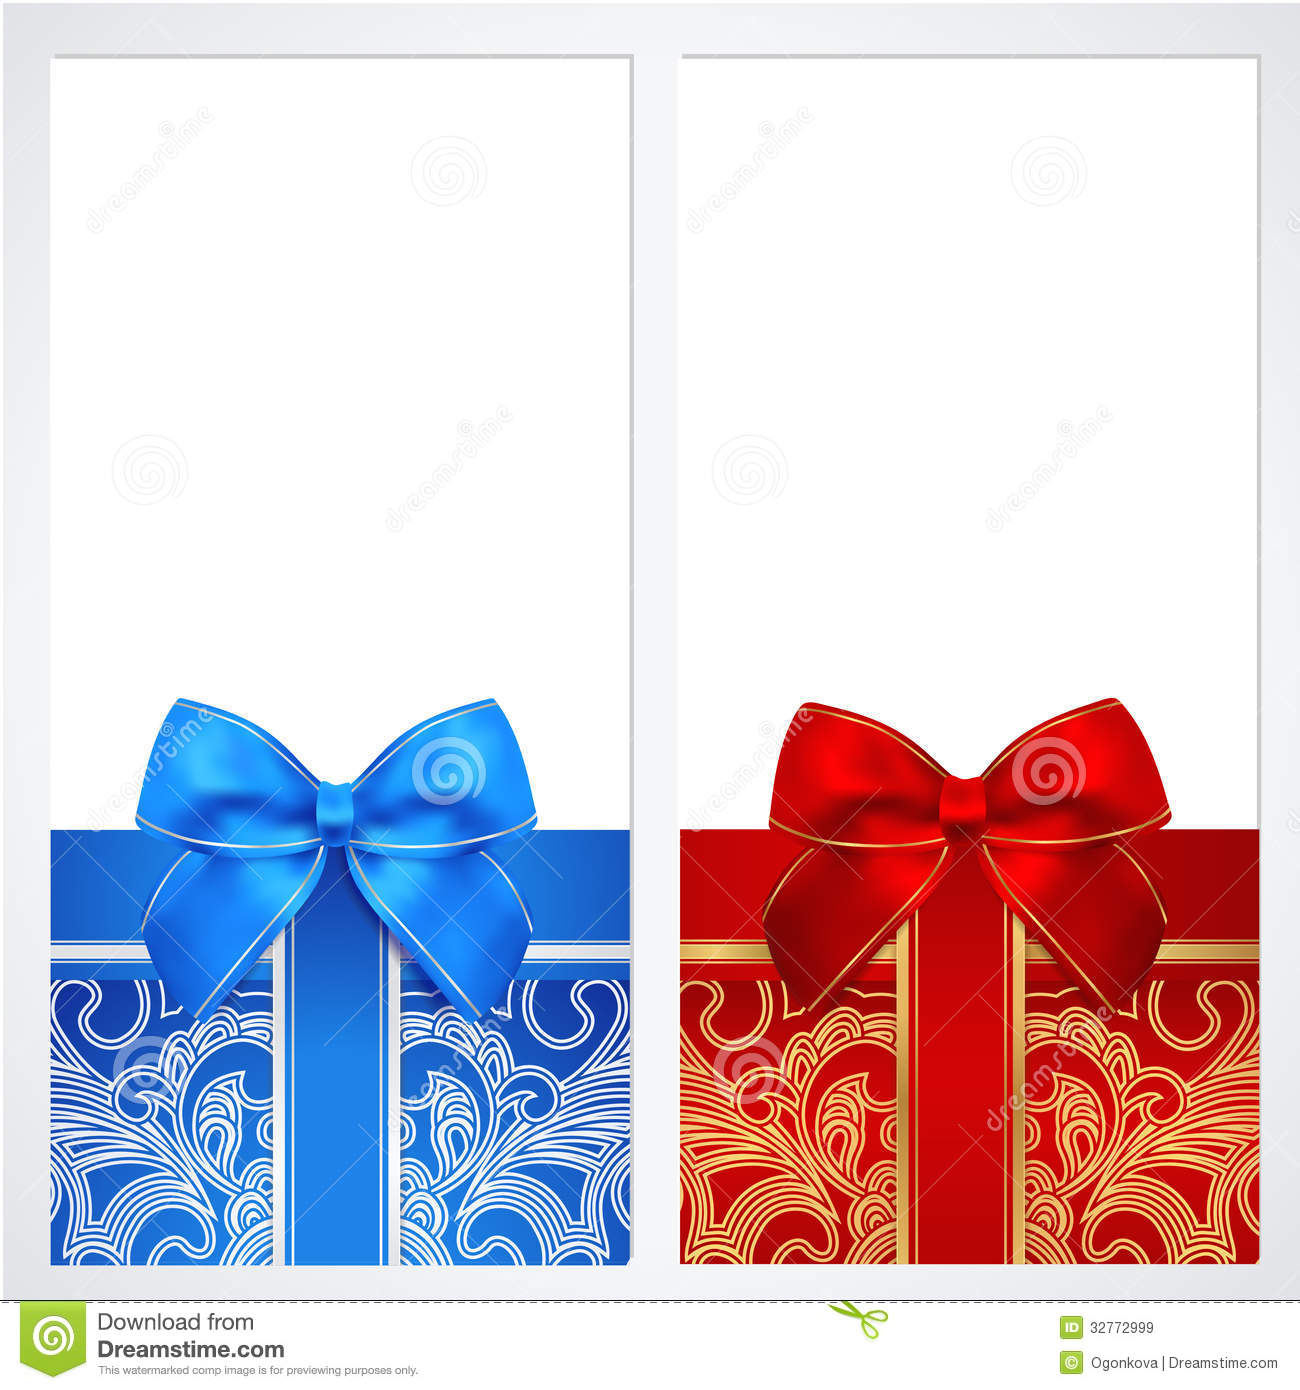 Voucher Gift Certificate Coupon Template Box Royalty